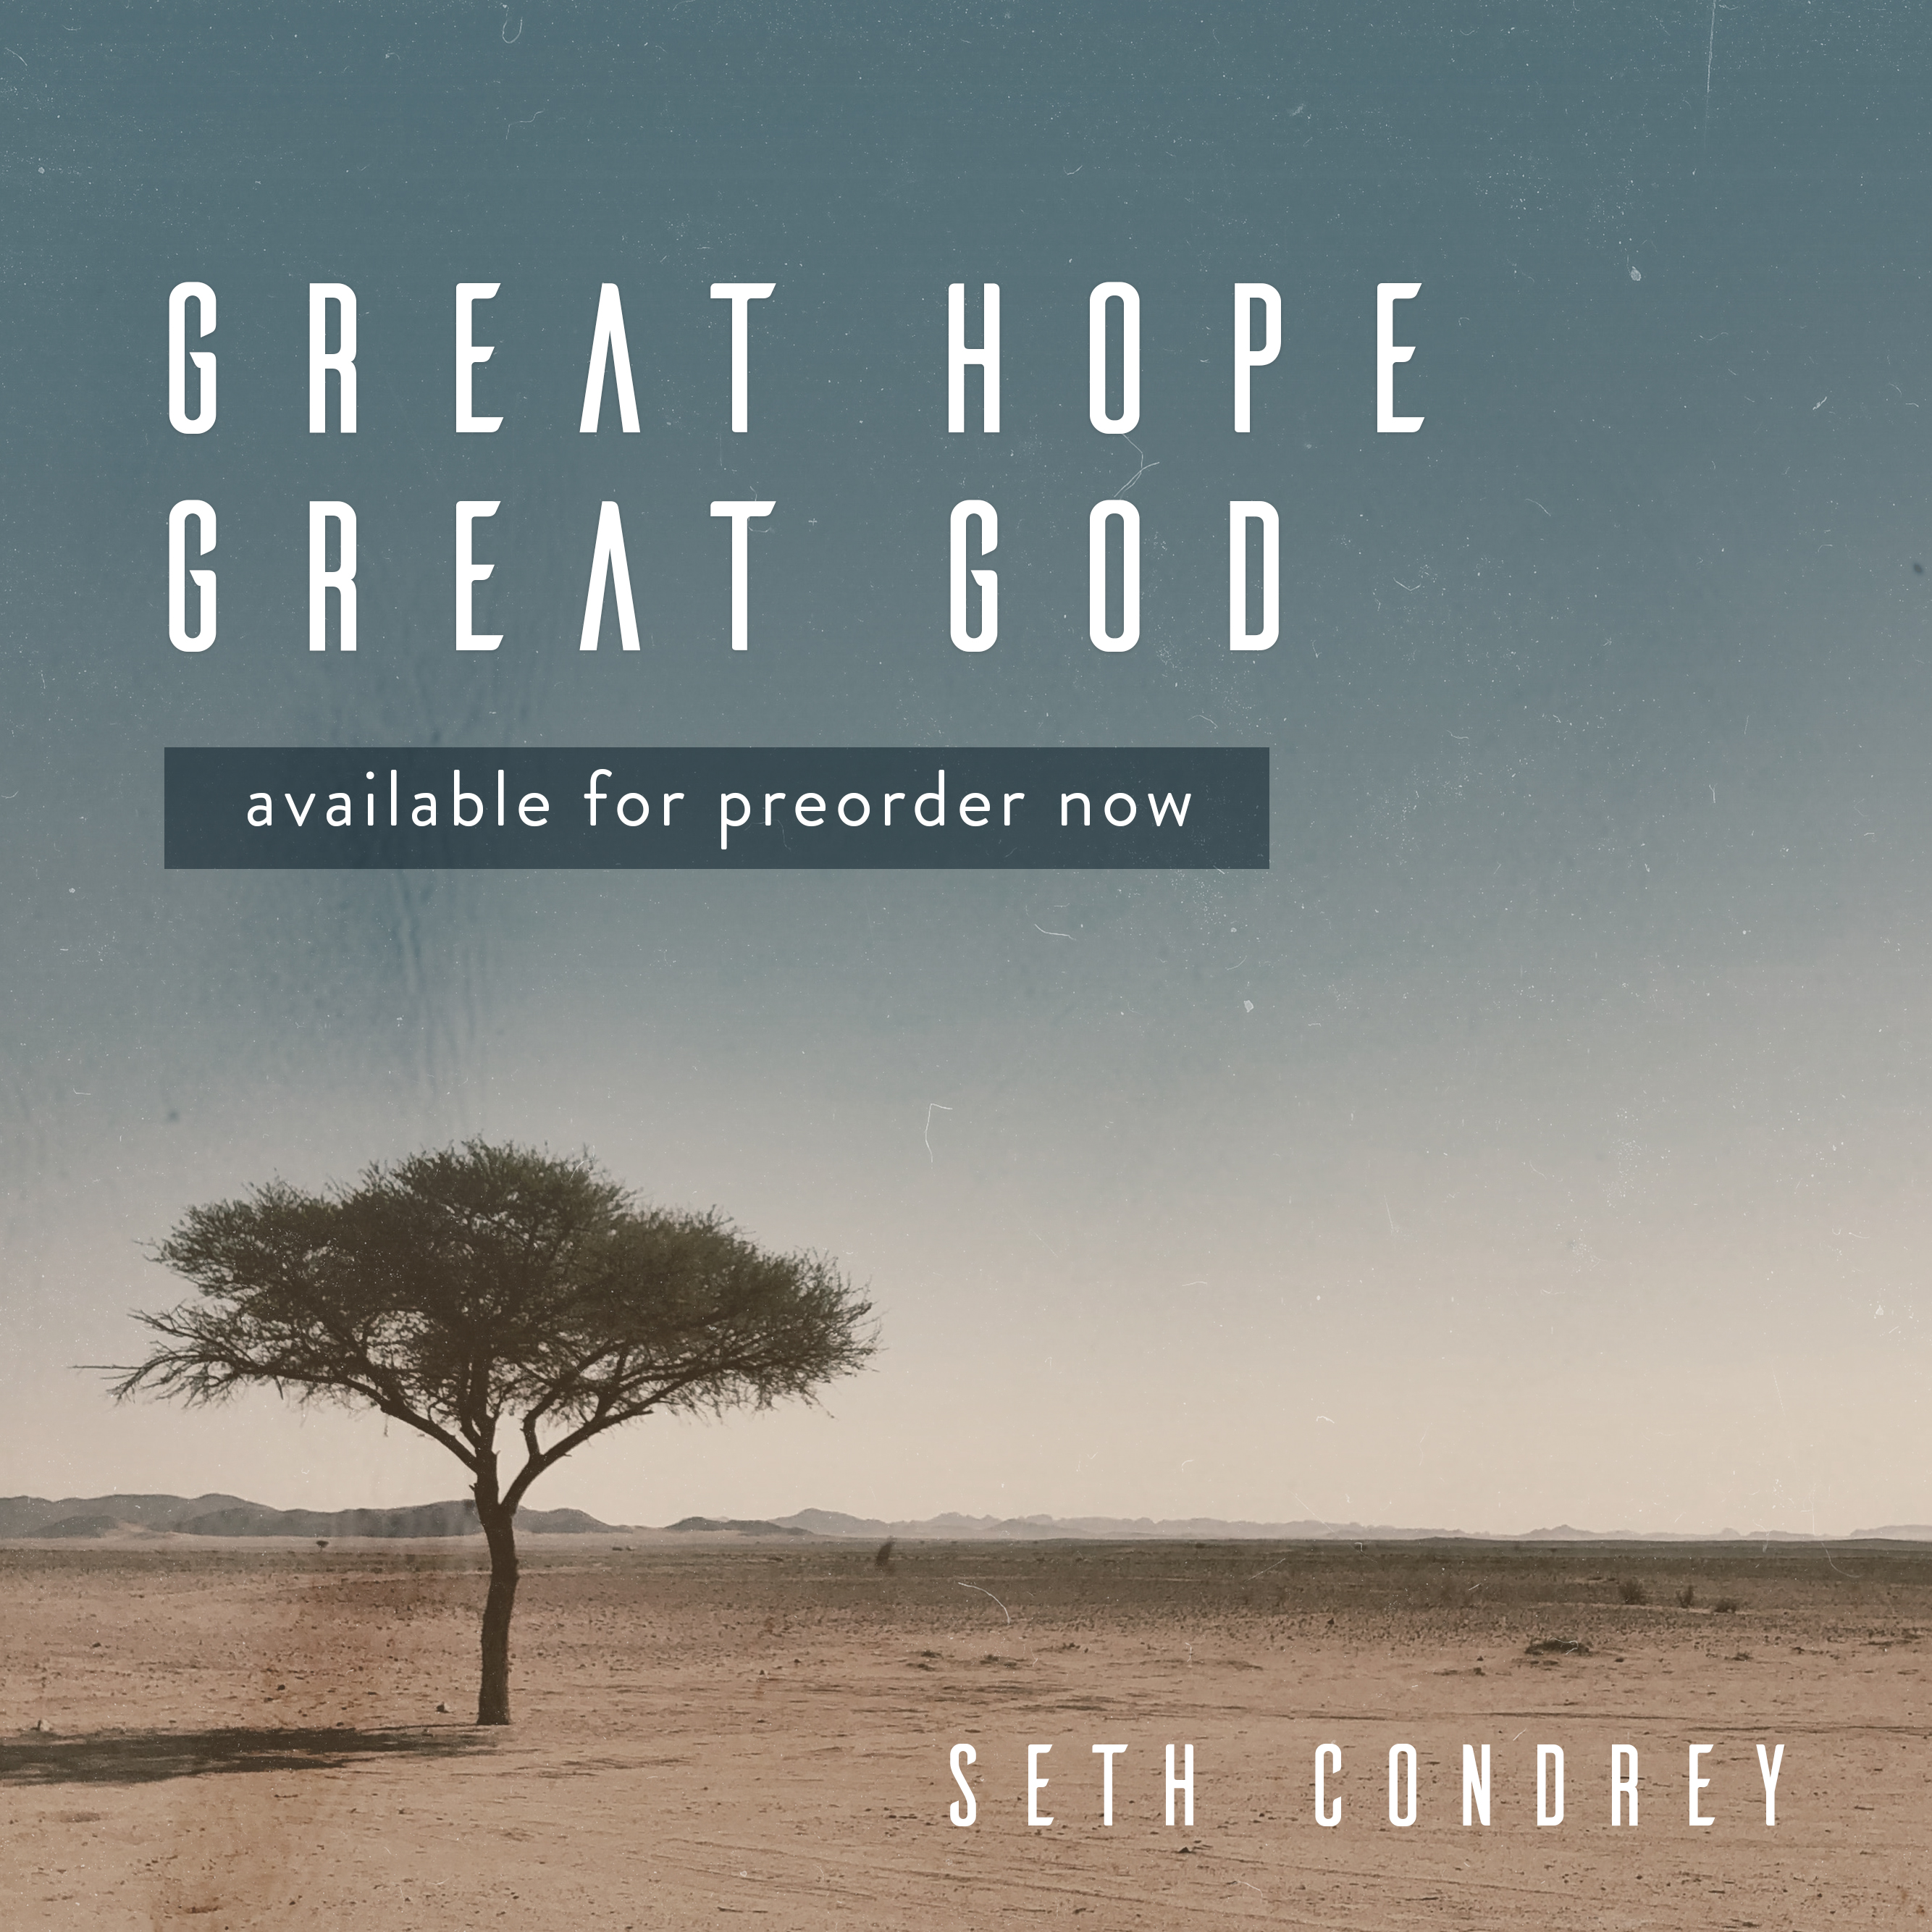 Great Hope, Great God by Seth Condrey. Cover art with a tree in the middle of a desert.